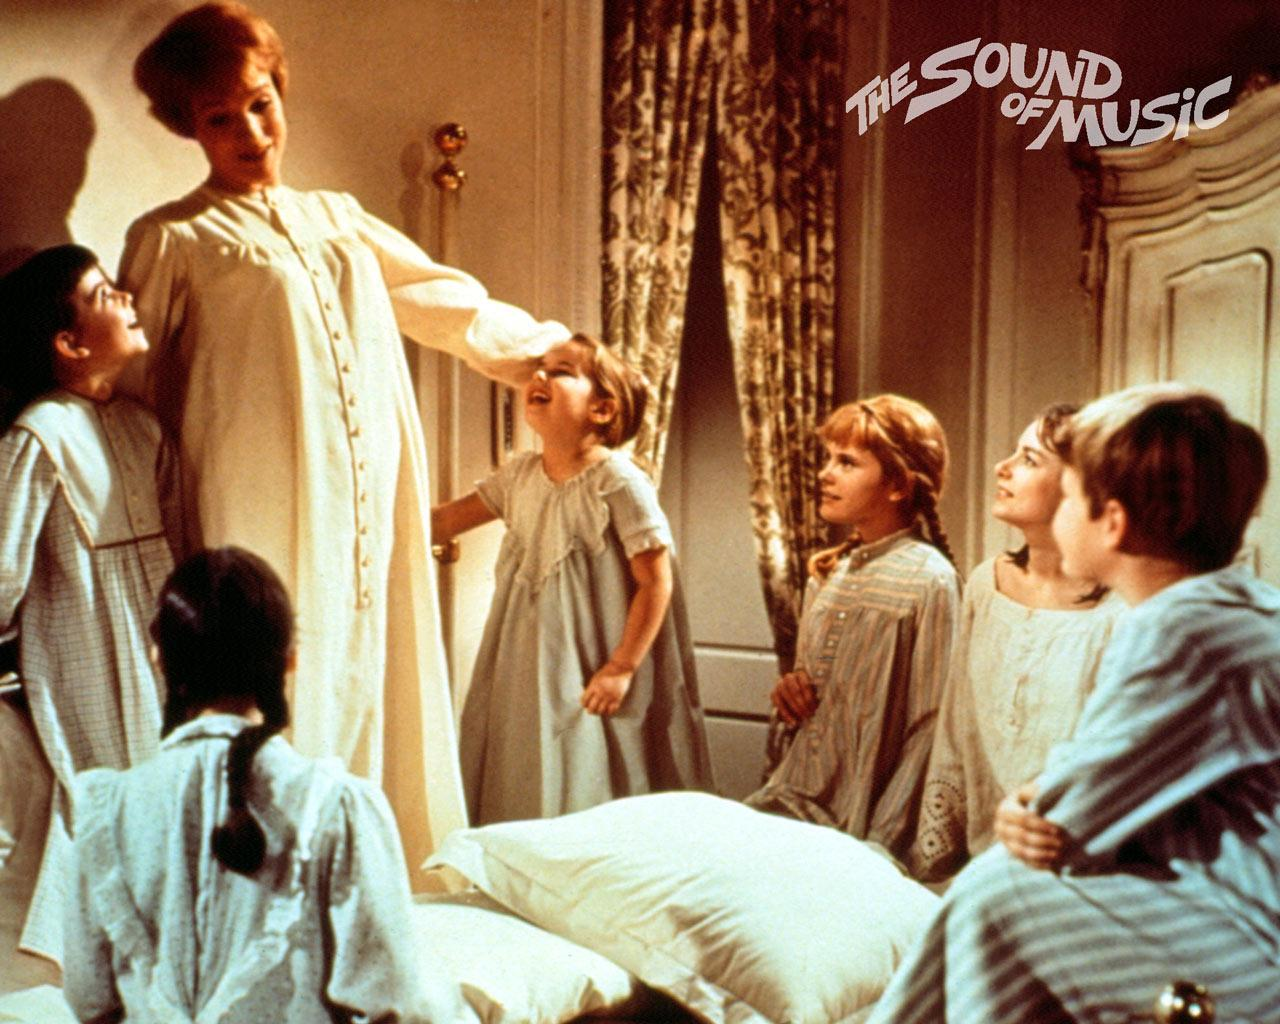 The Sound Of Music Wallpaper #4 1280 x 1024